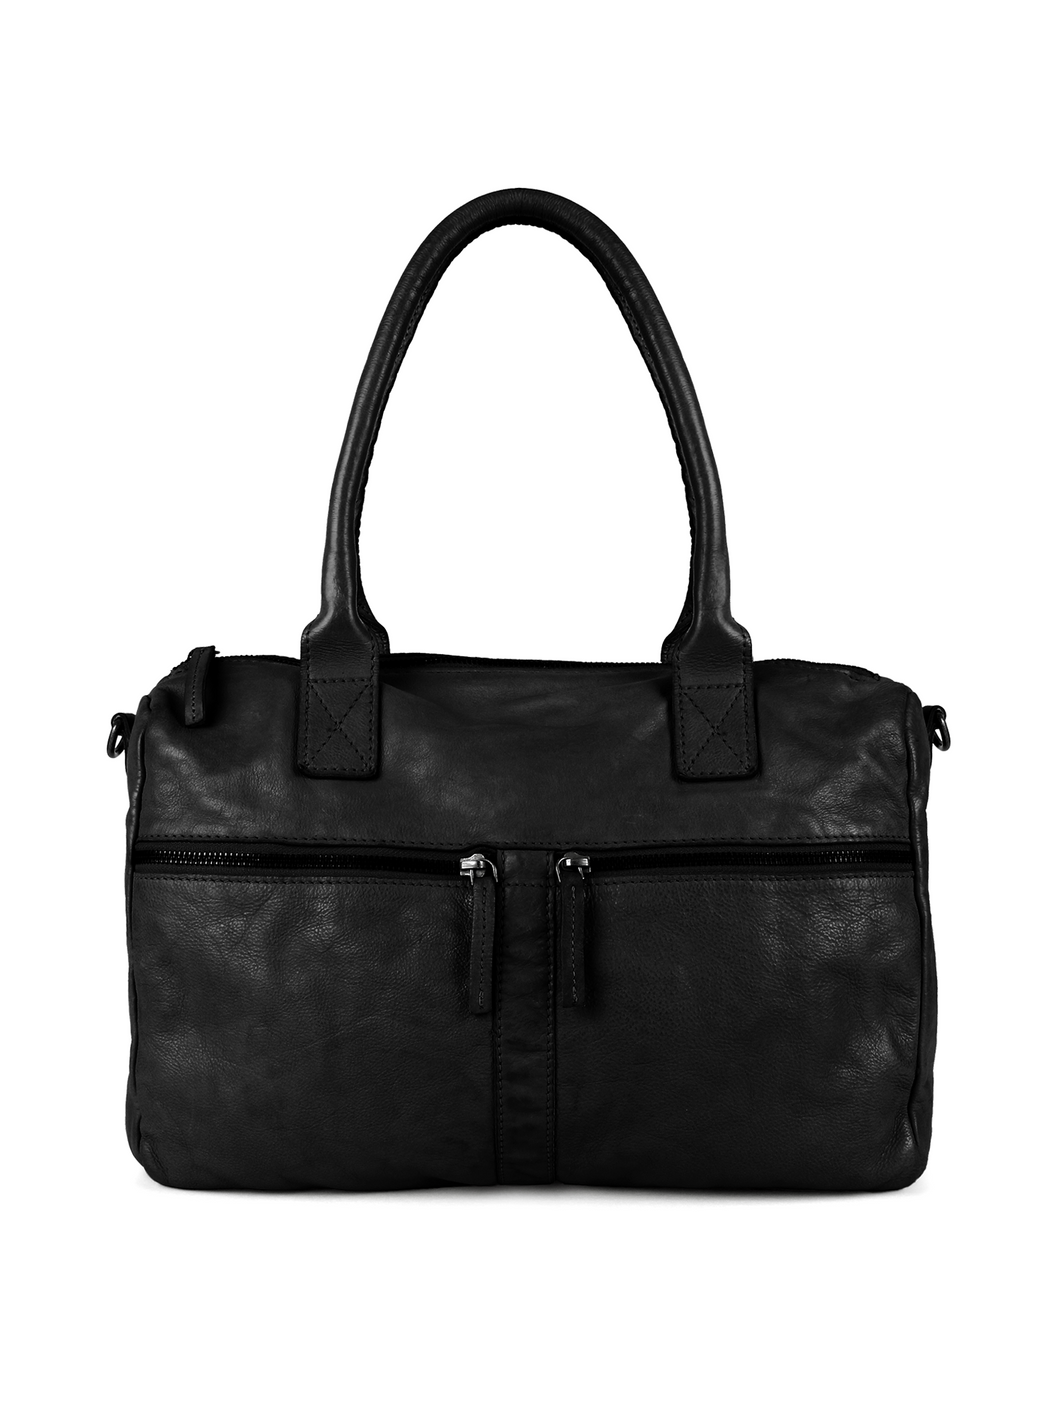 DSTRCT HARRINGTON ROAD LAPTOPBAG BLACK 354330.10